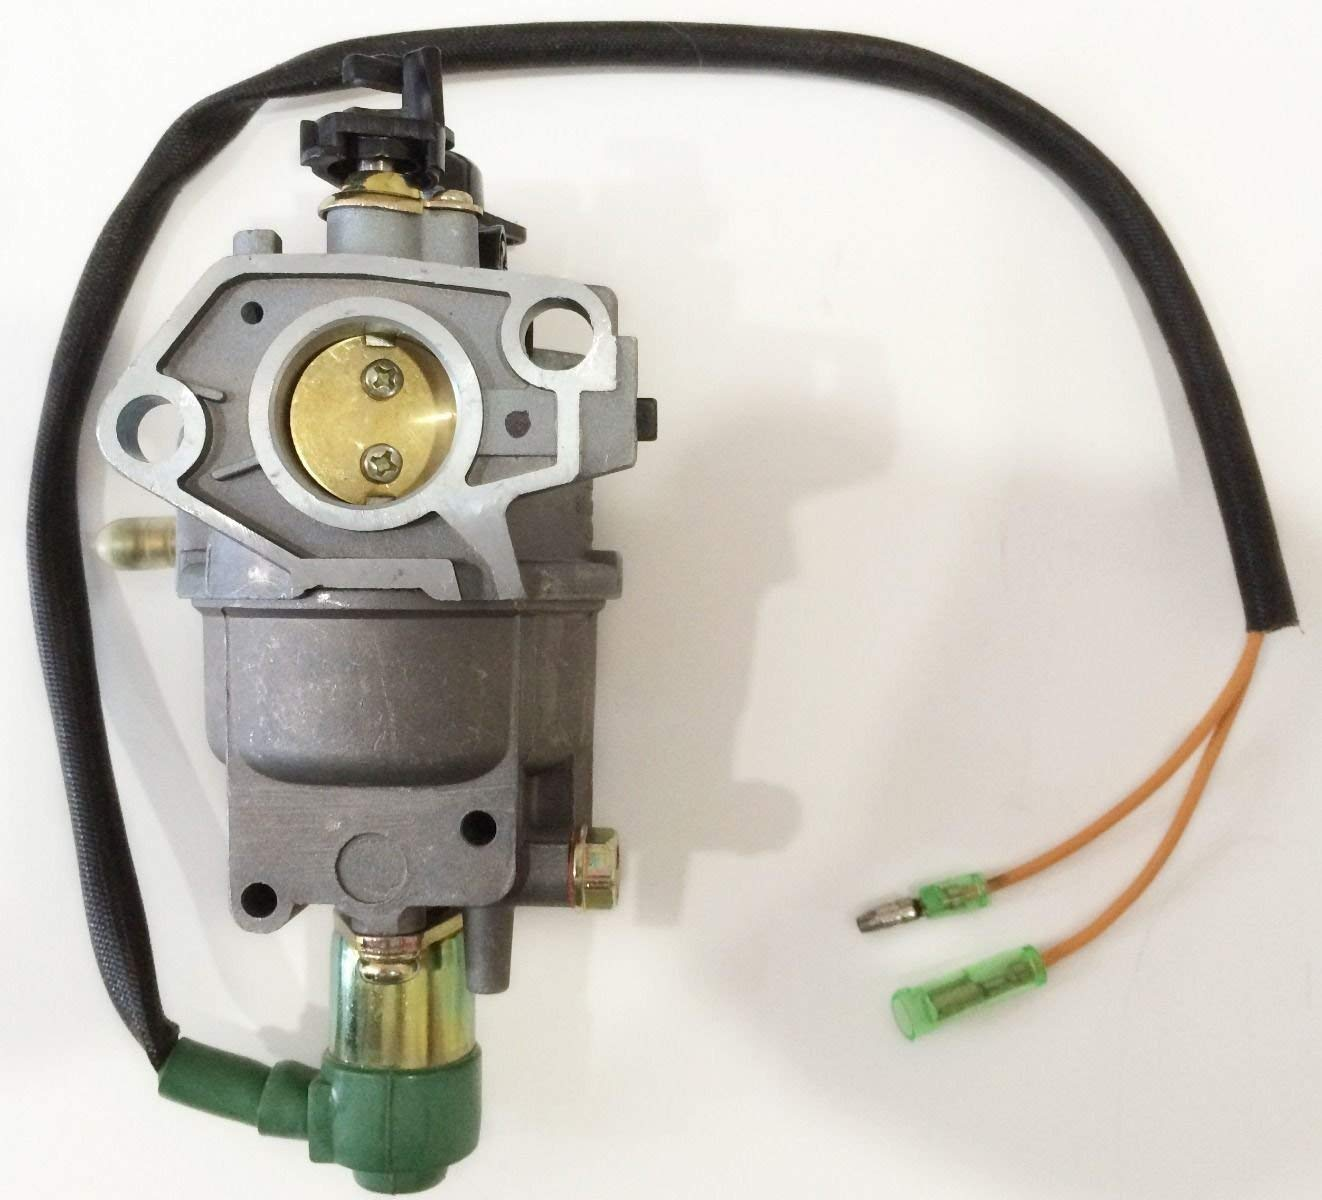 Carburetor for us general thunderbolt model 3708 11hp 5700 watts.